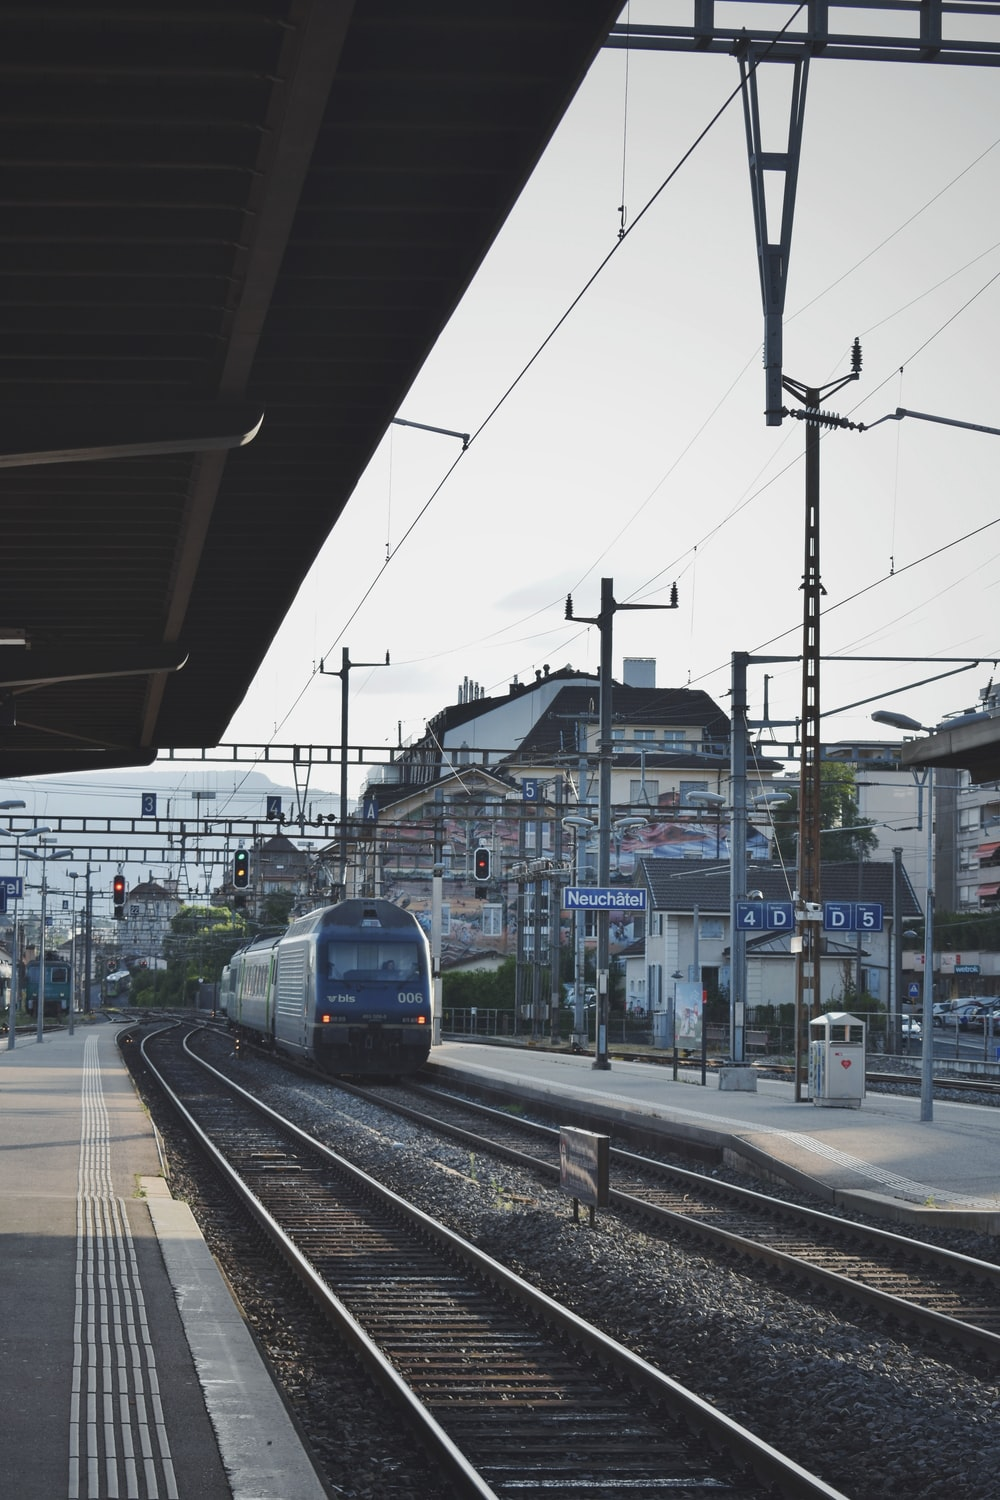 white and blue train near buildings during daytime